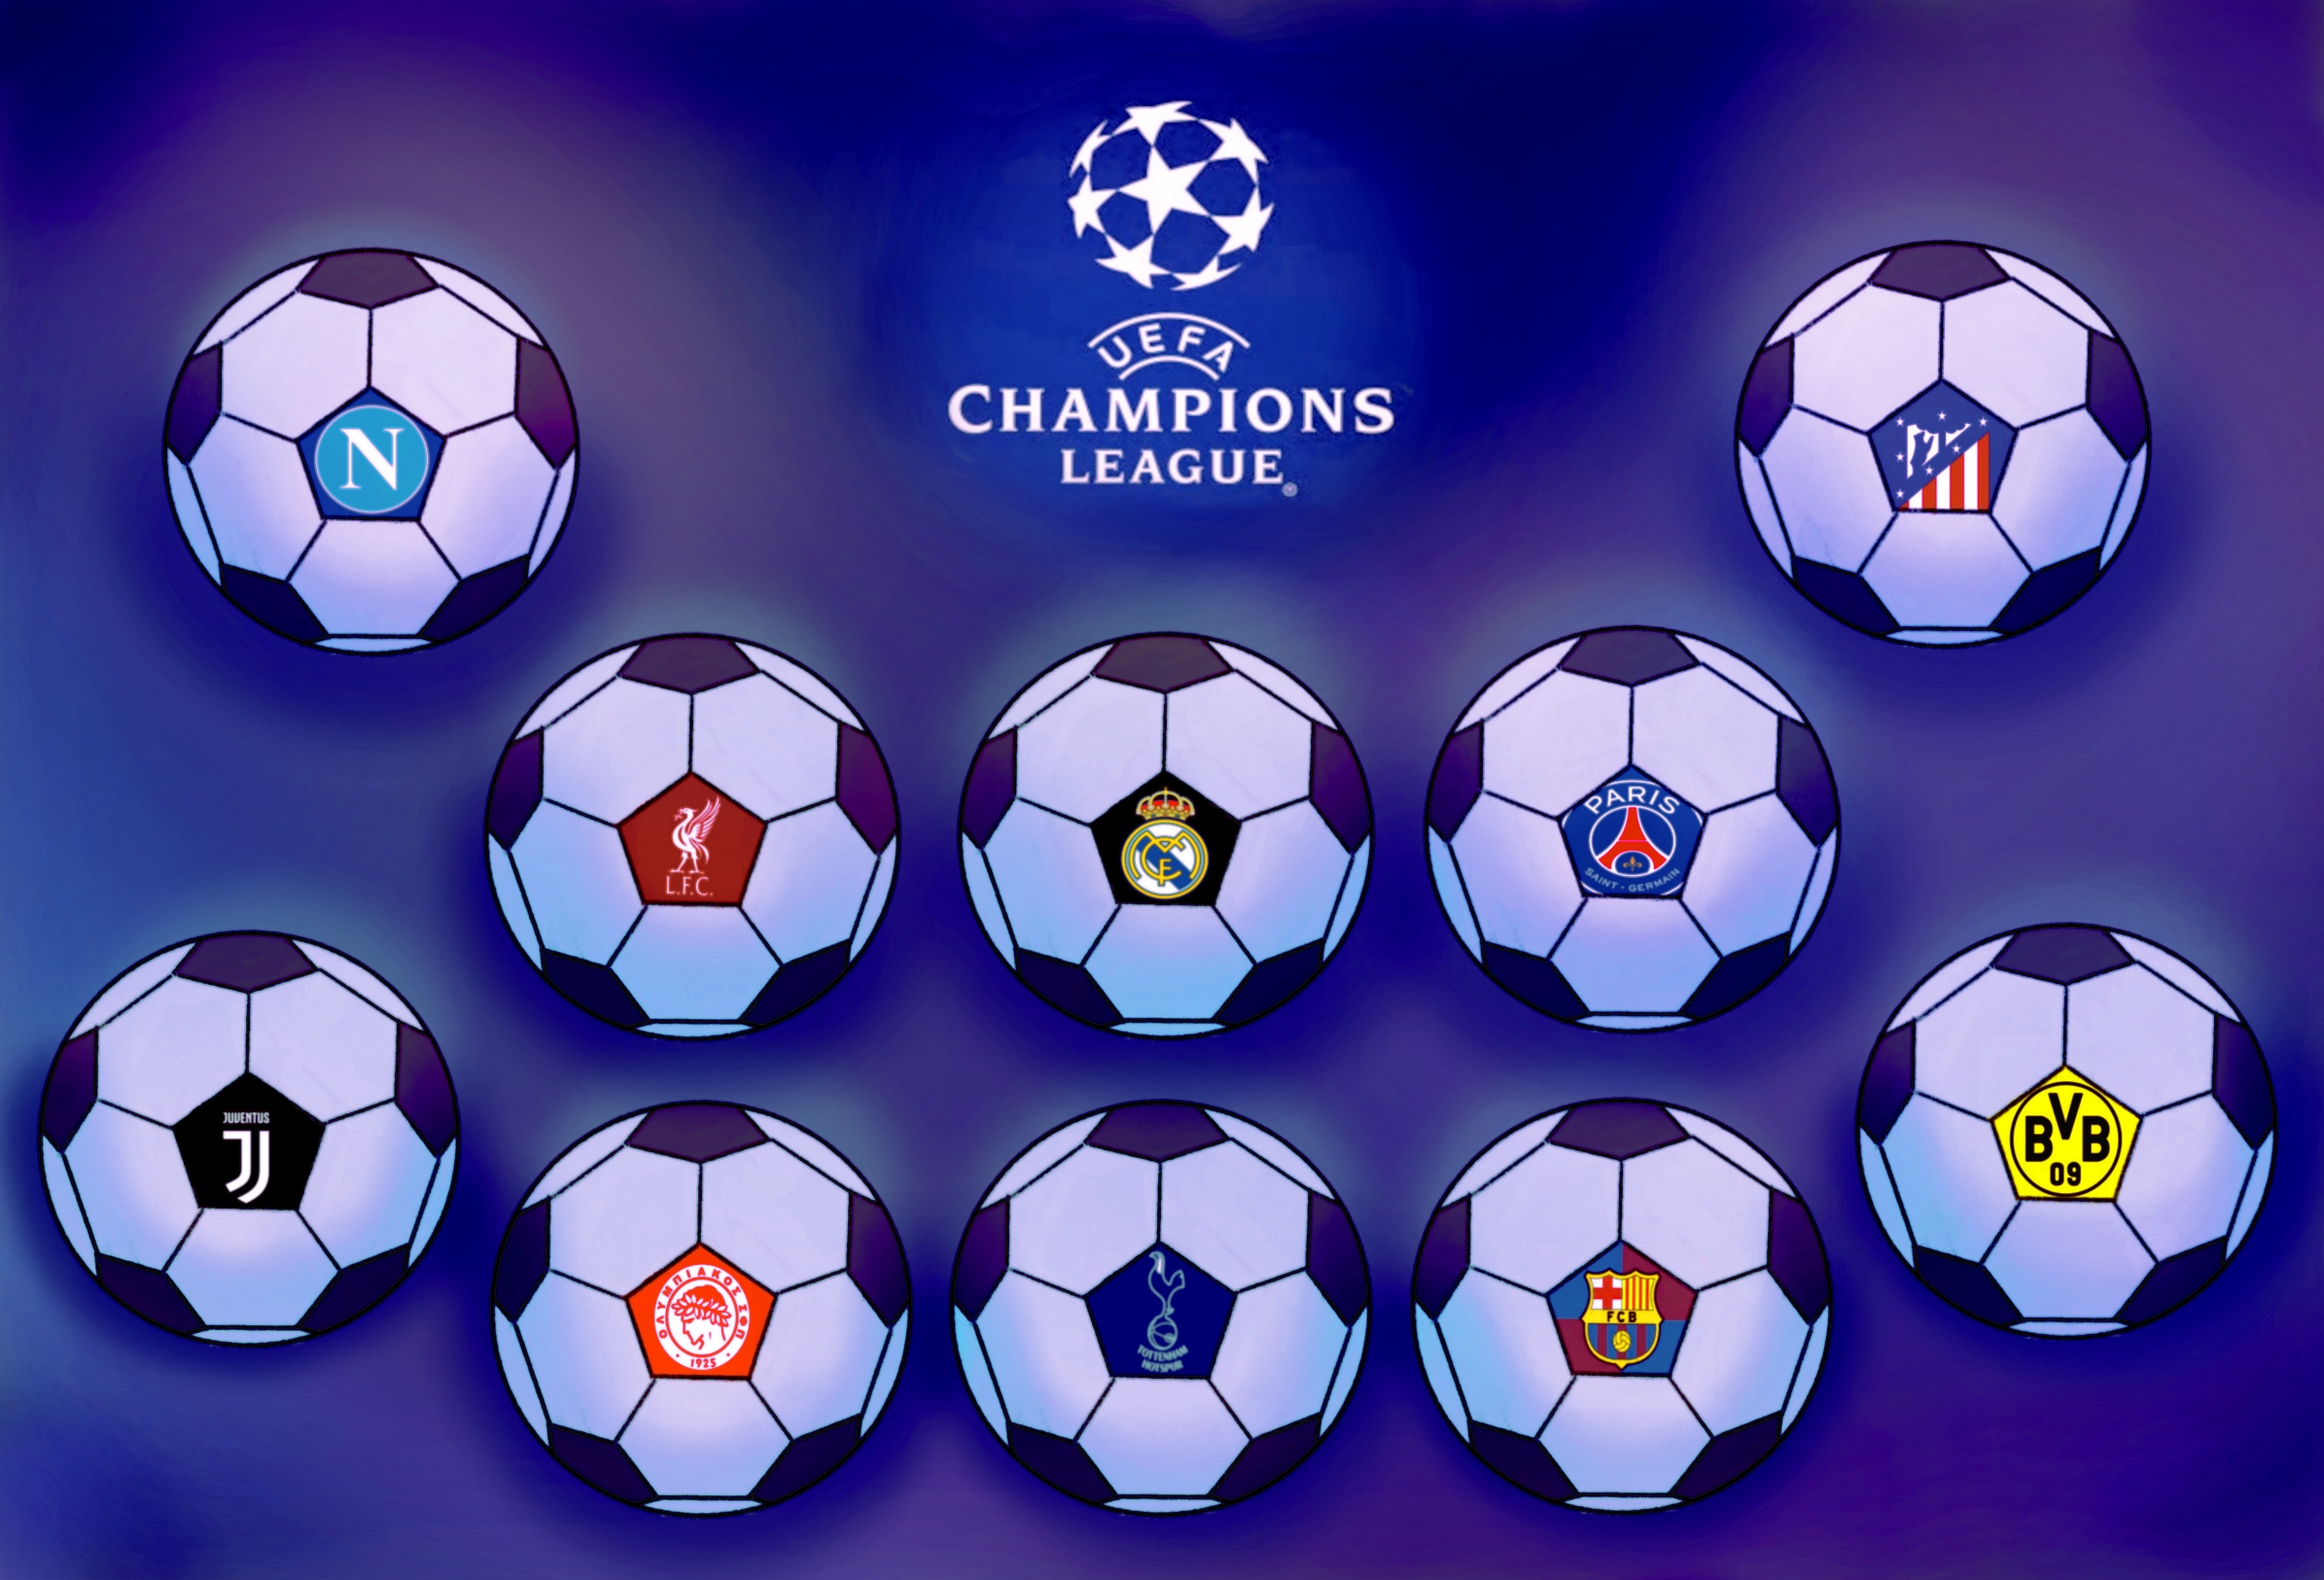 UEFA Champions League Round 16 Draw, Liverpool, Man City and Chelsea handed tough clashes